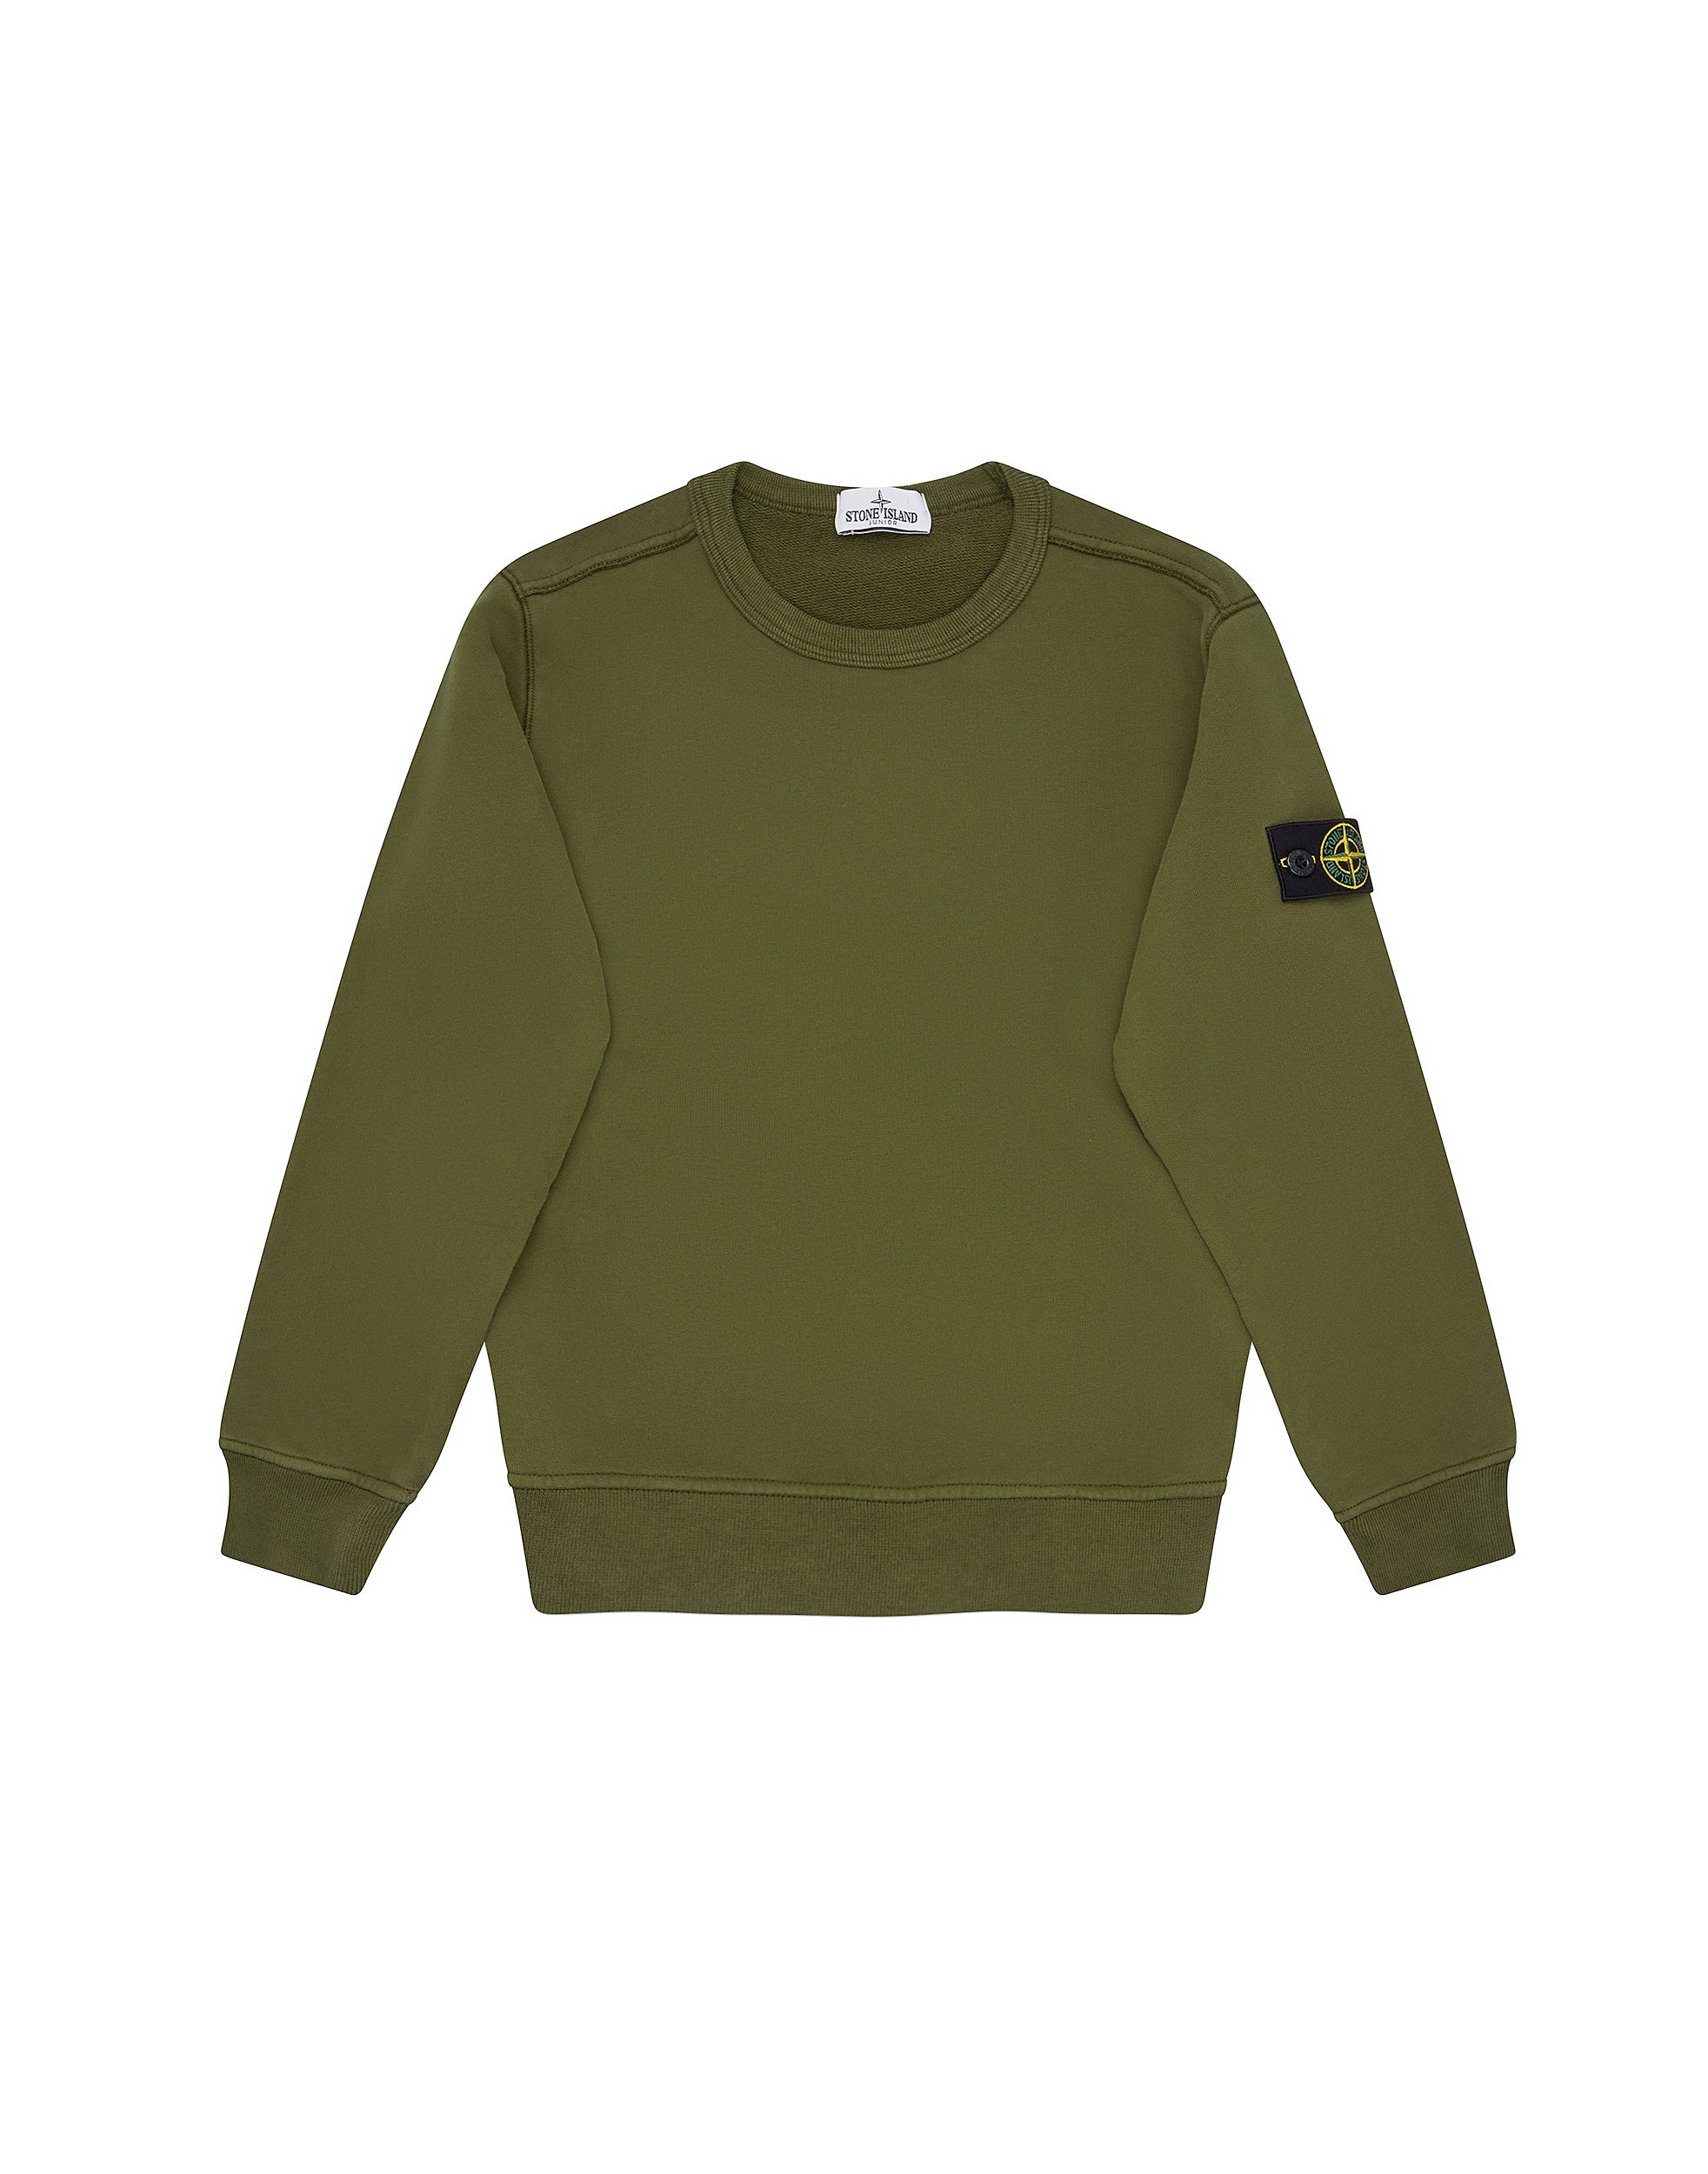 60940 Sweatshirt in Military Green